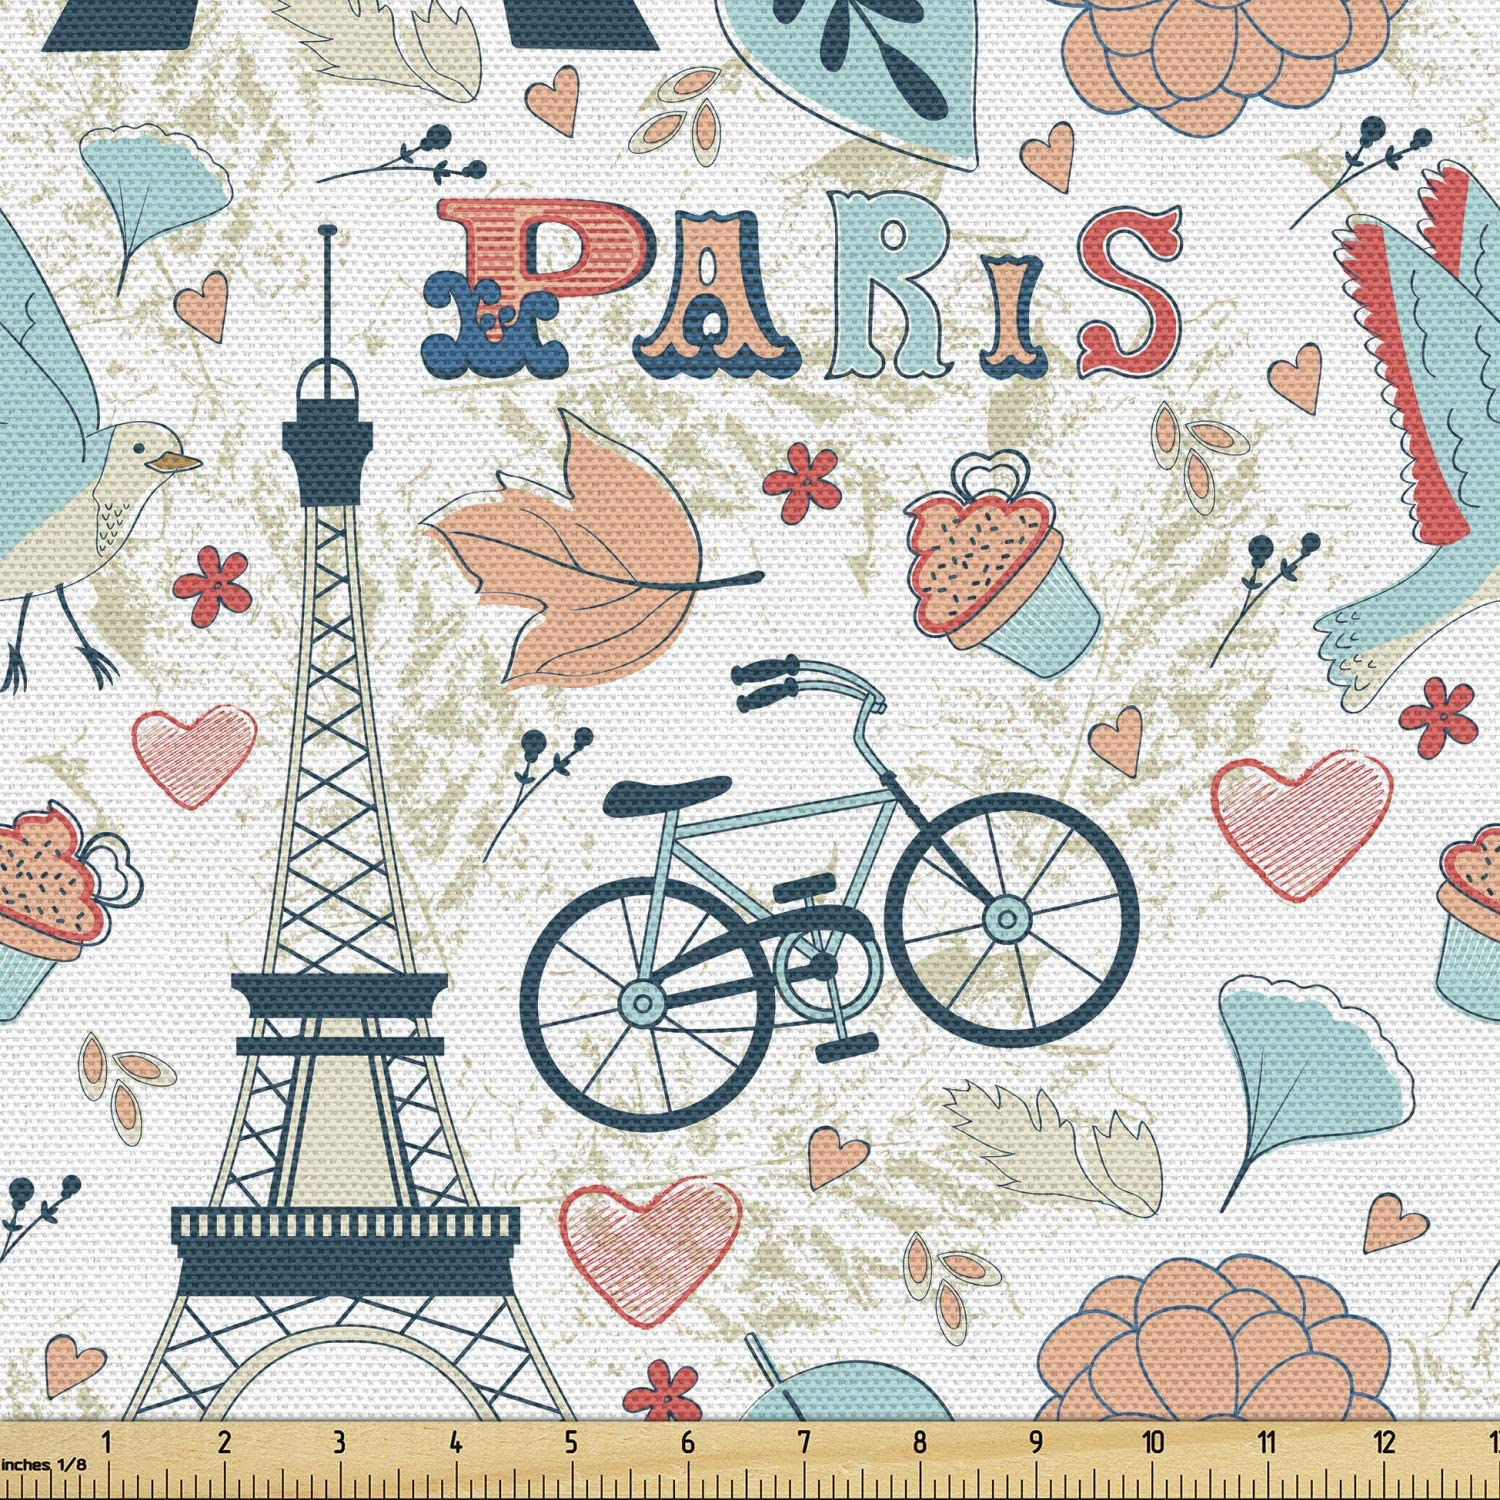 Ambesonne Paris Fabric by The Yard, Dove Cupcake Eiffel Tower Flowers Falling Leaves Love Grungy Autumn in France Theme, Decorative Fabric for Upholstery and Home Accents, 2 Yards, Blush Turquoise